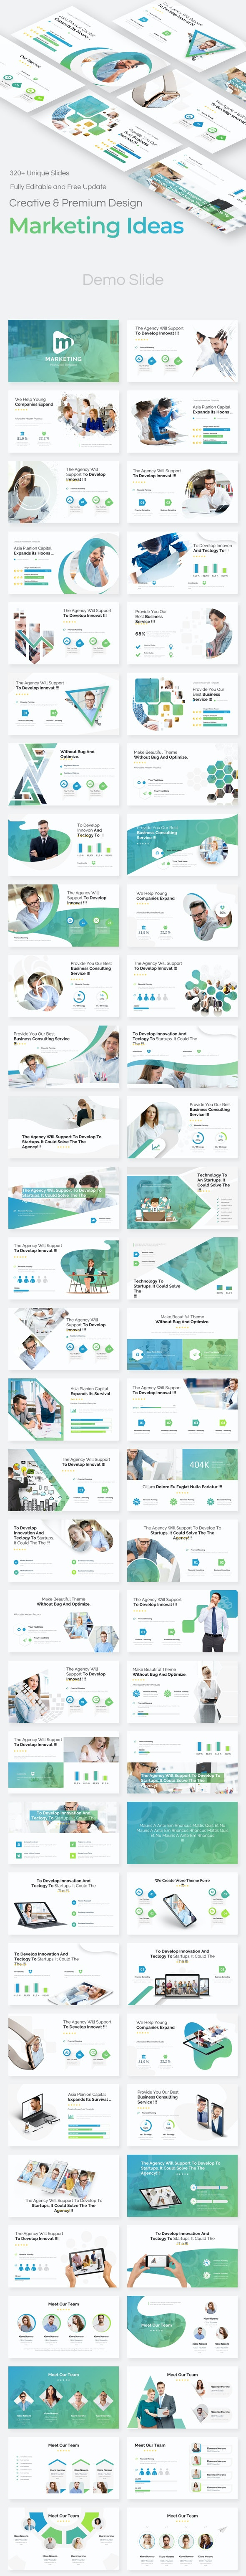 Marketing Ideas Pitch Deck Google Slide Template - Google Slides Presentation Templates